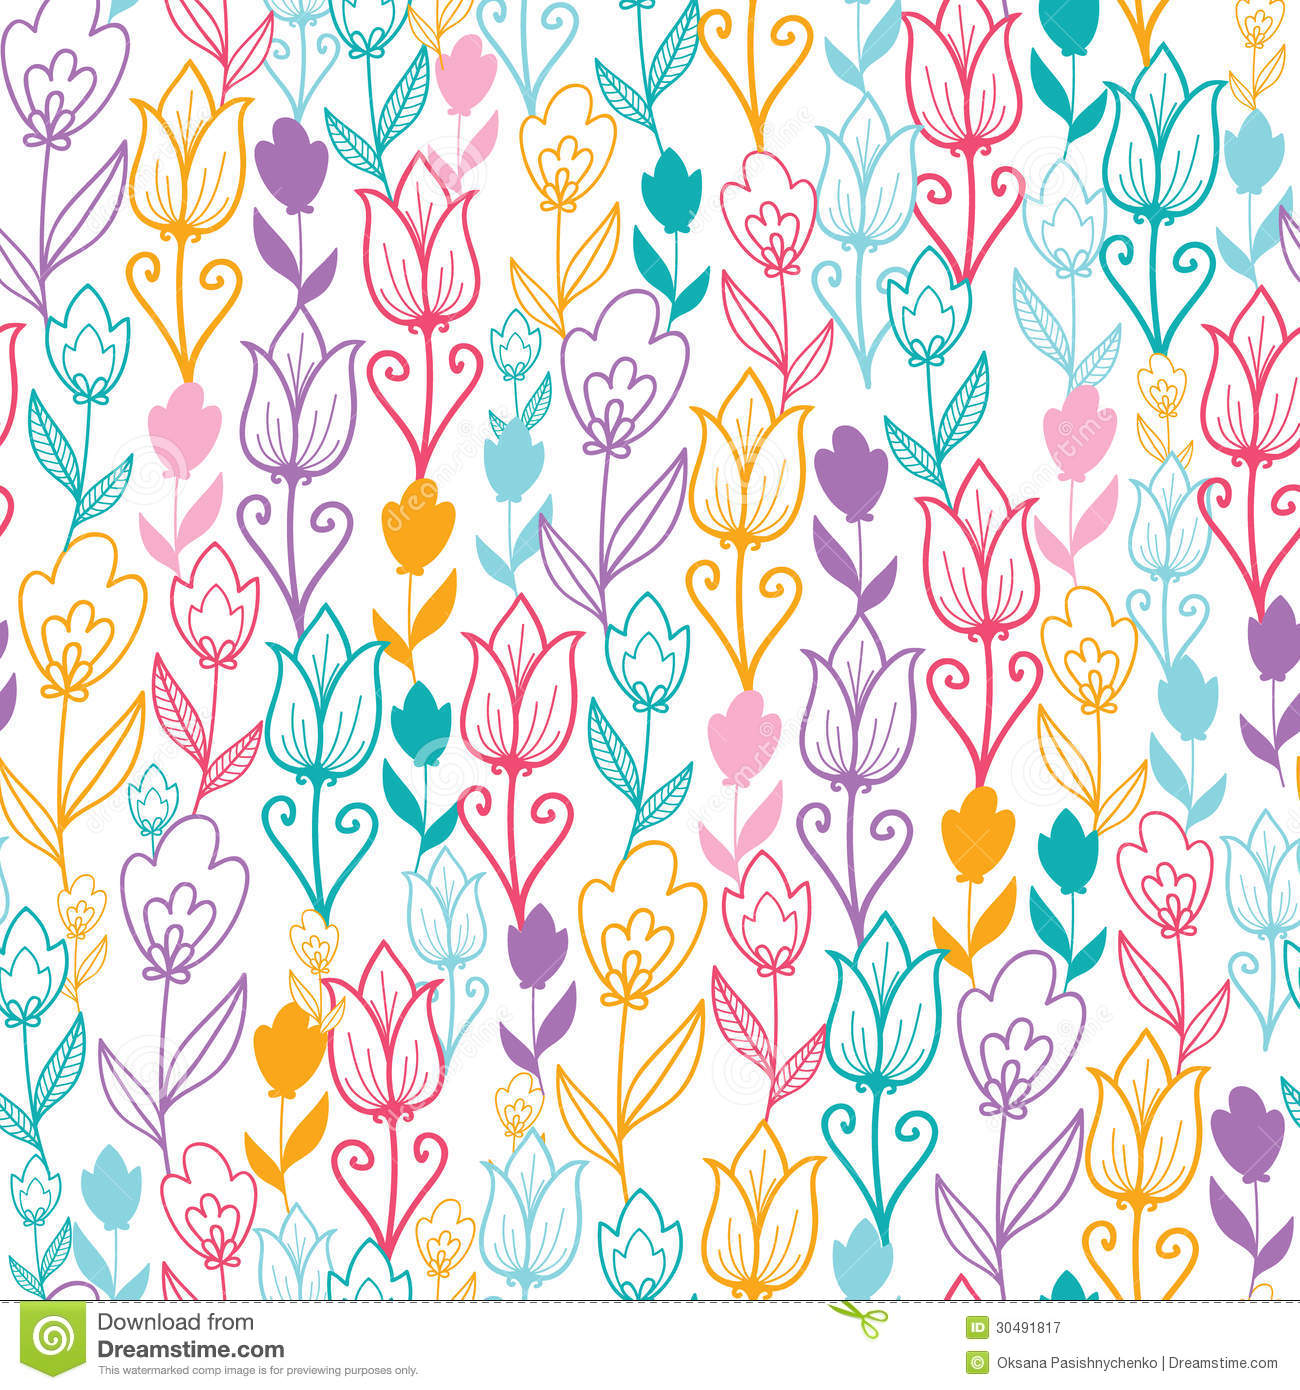 colorful floral background patterns - photo #41